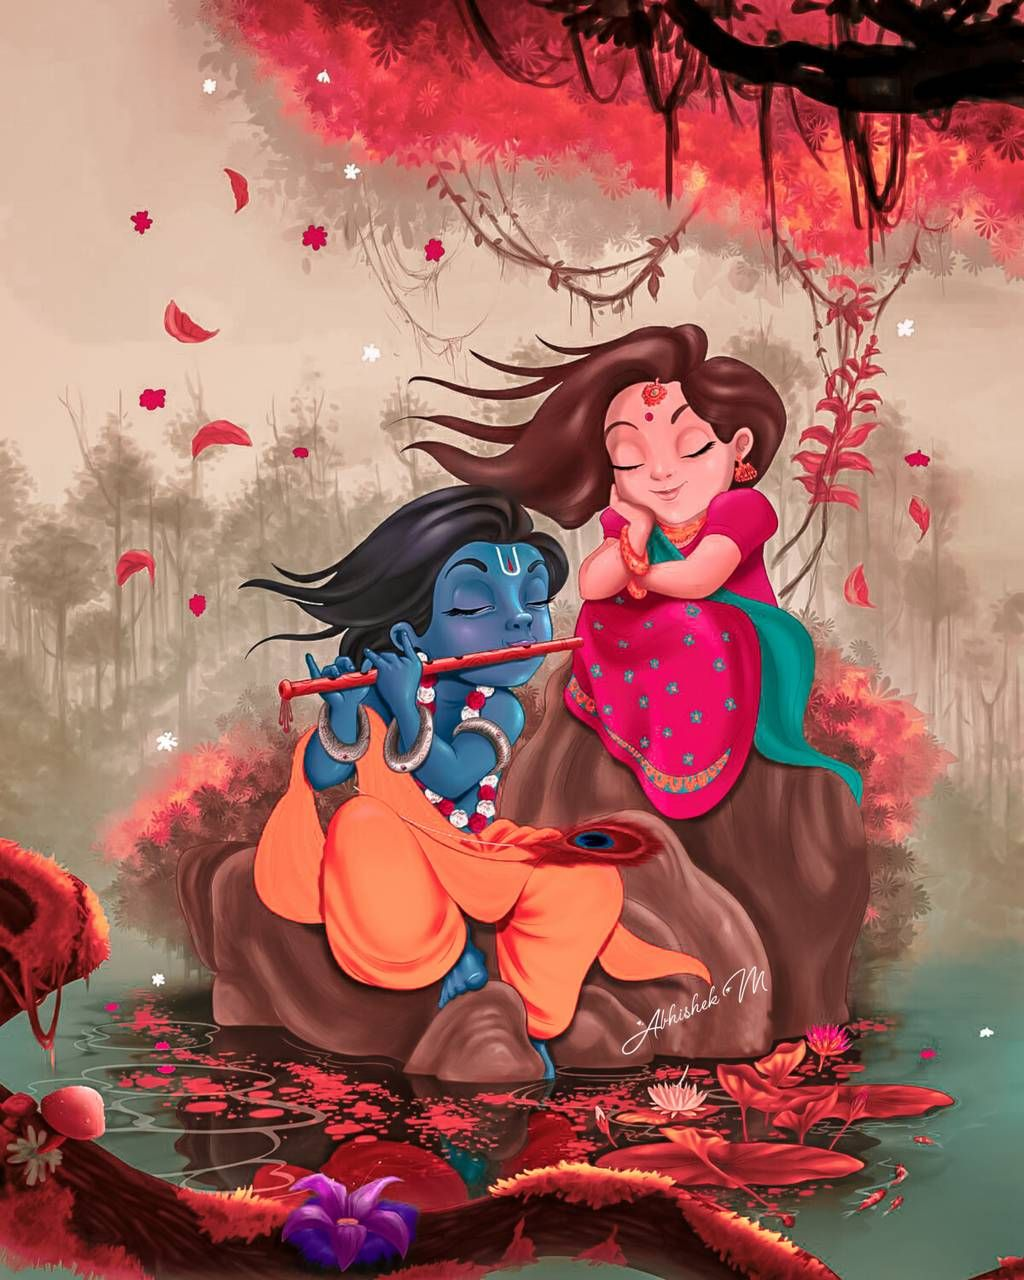 Download Radha Krishna Art Wallpaper By Abhishekm35 4f Free On Zedge Now Browse Millions Of P Radha Krishna Art Krishna Wallpaper Radha Krishna Wallpaper